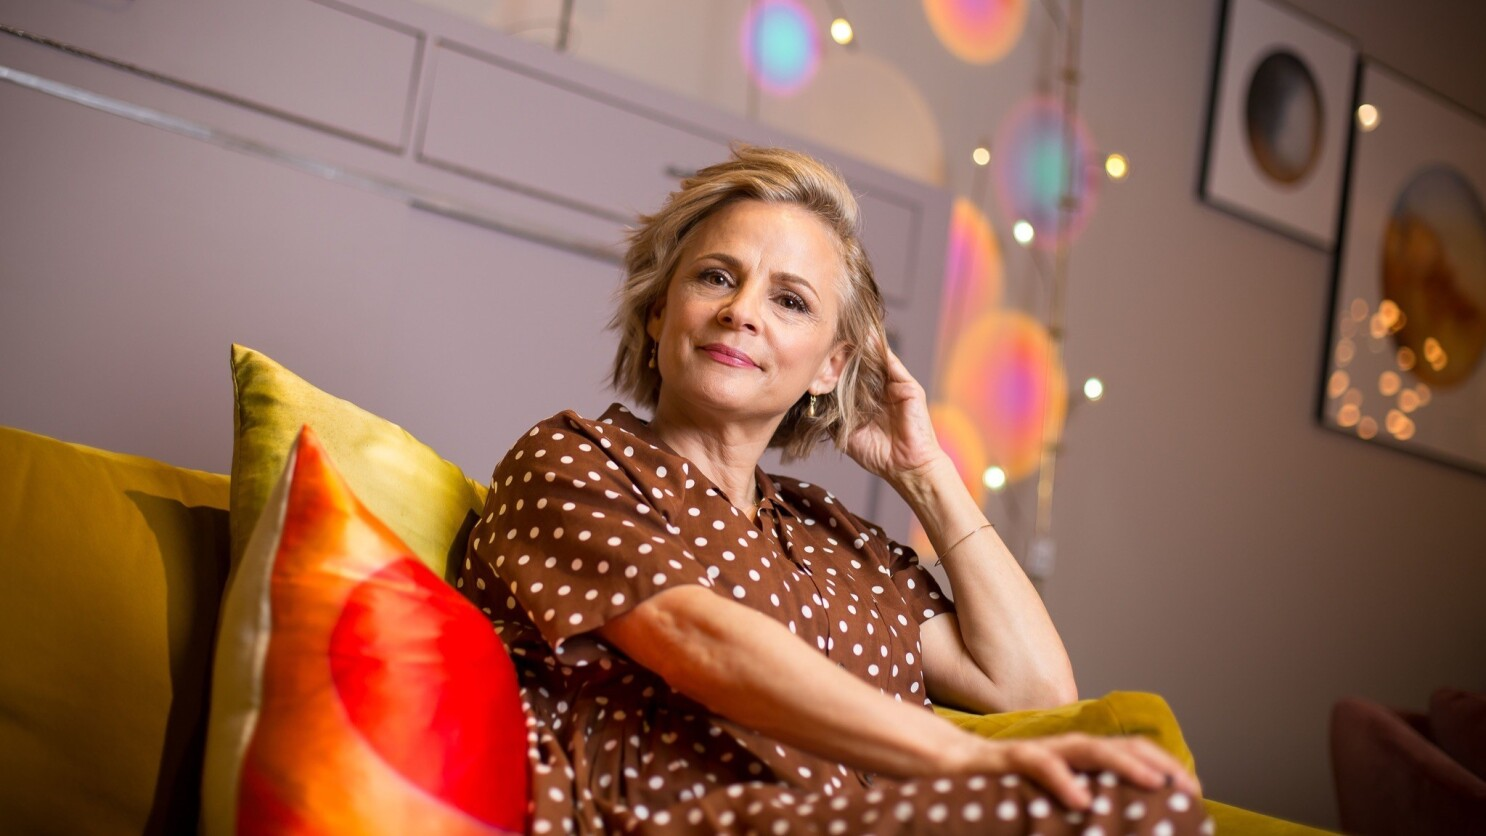 Amy Sedaris Kimmy Schmidt amy sedaris channels her vintage aesthetic in her trump-free